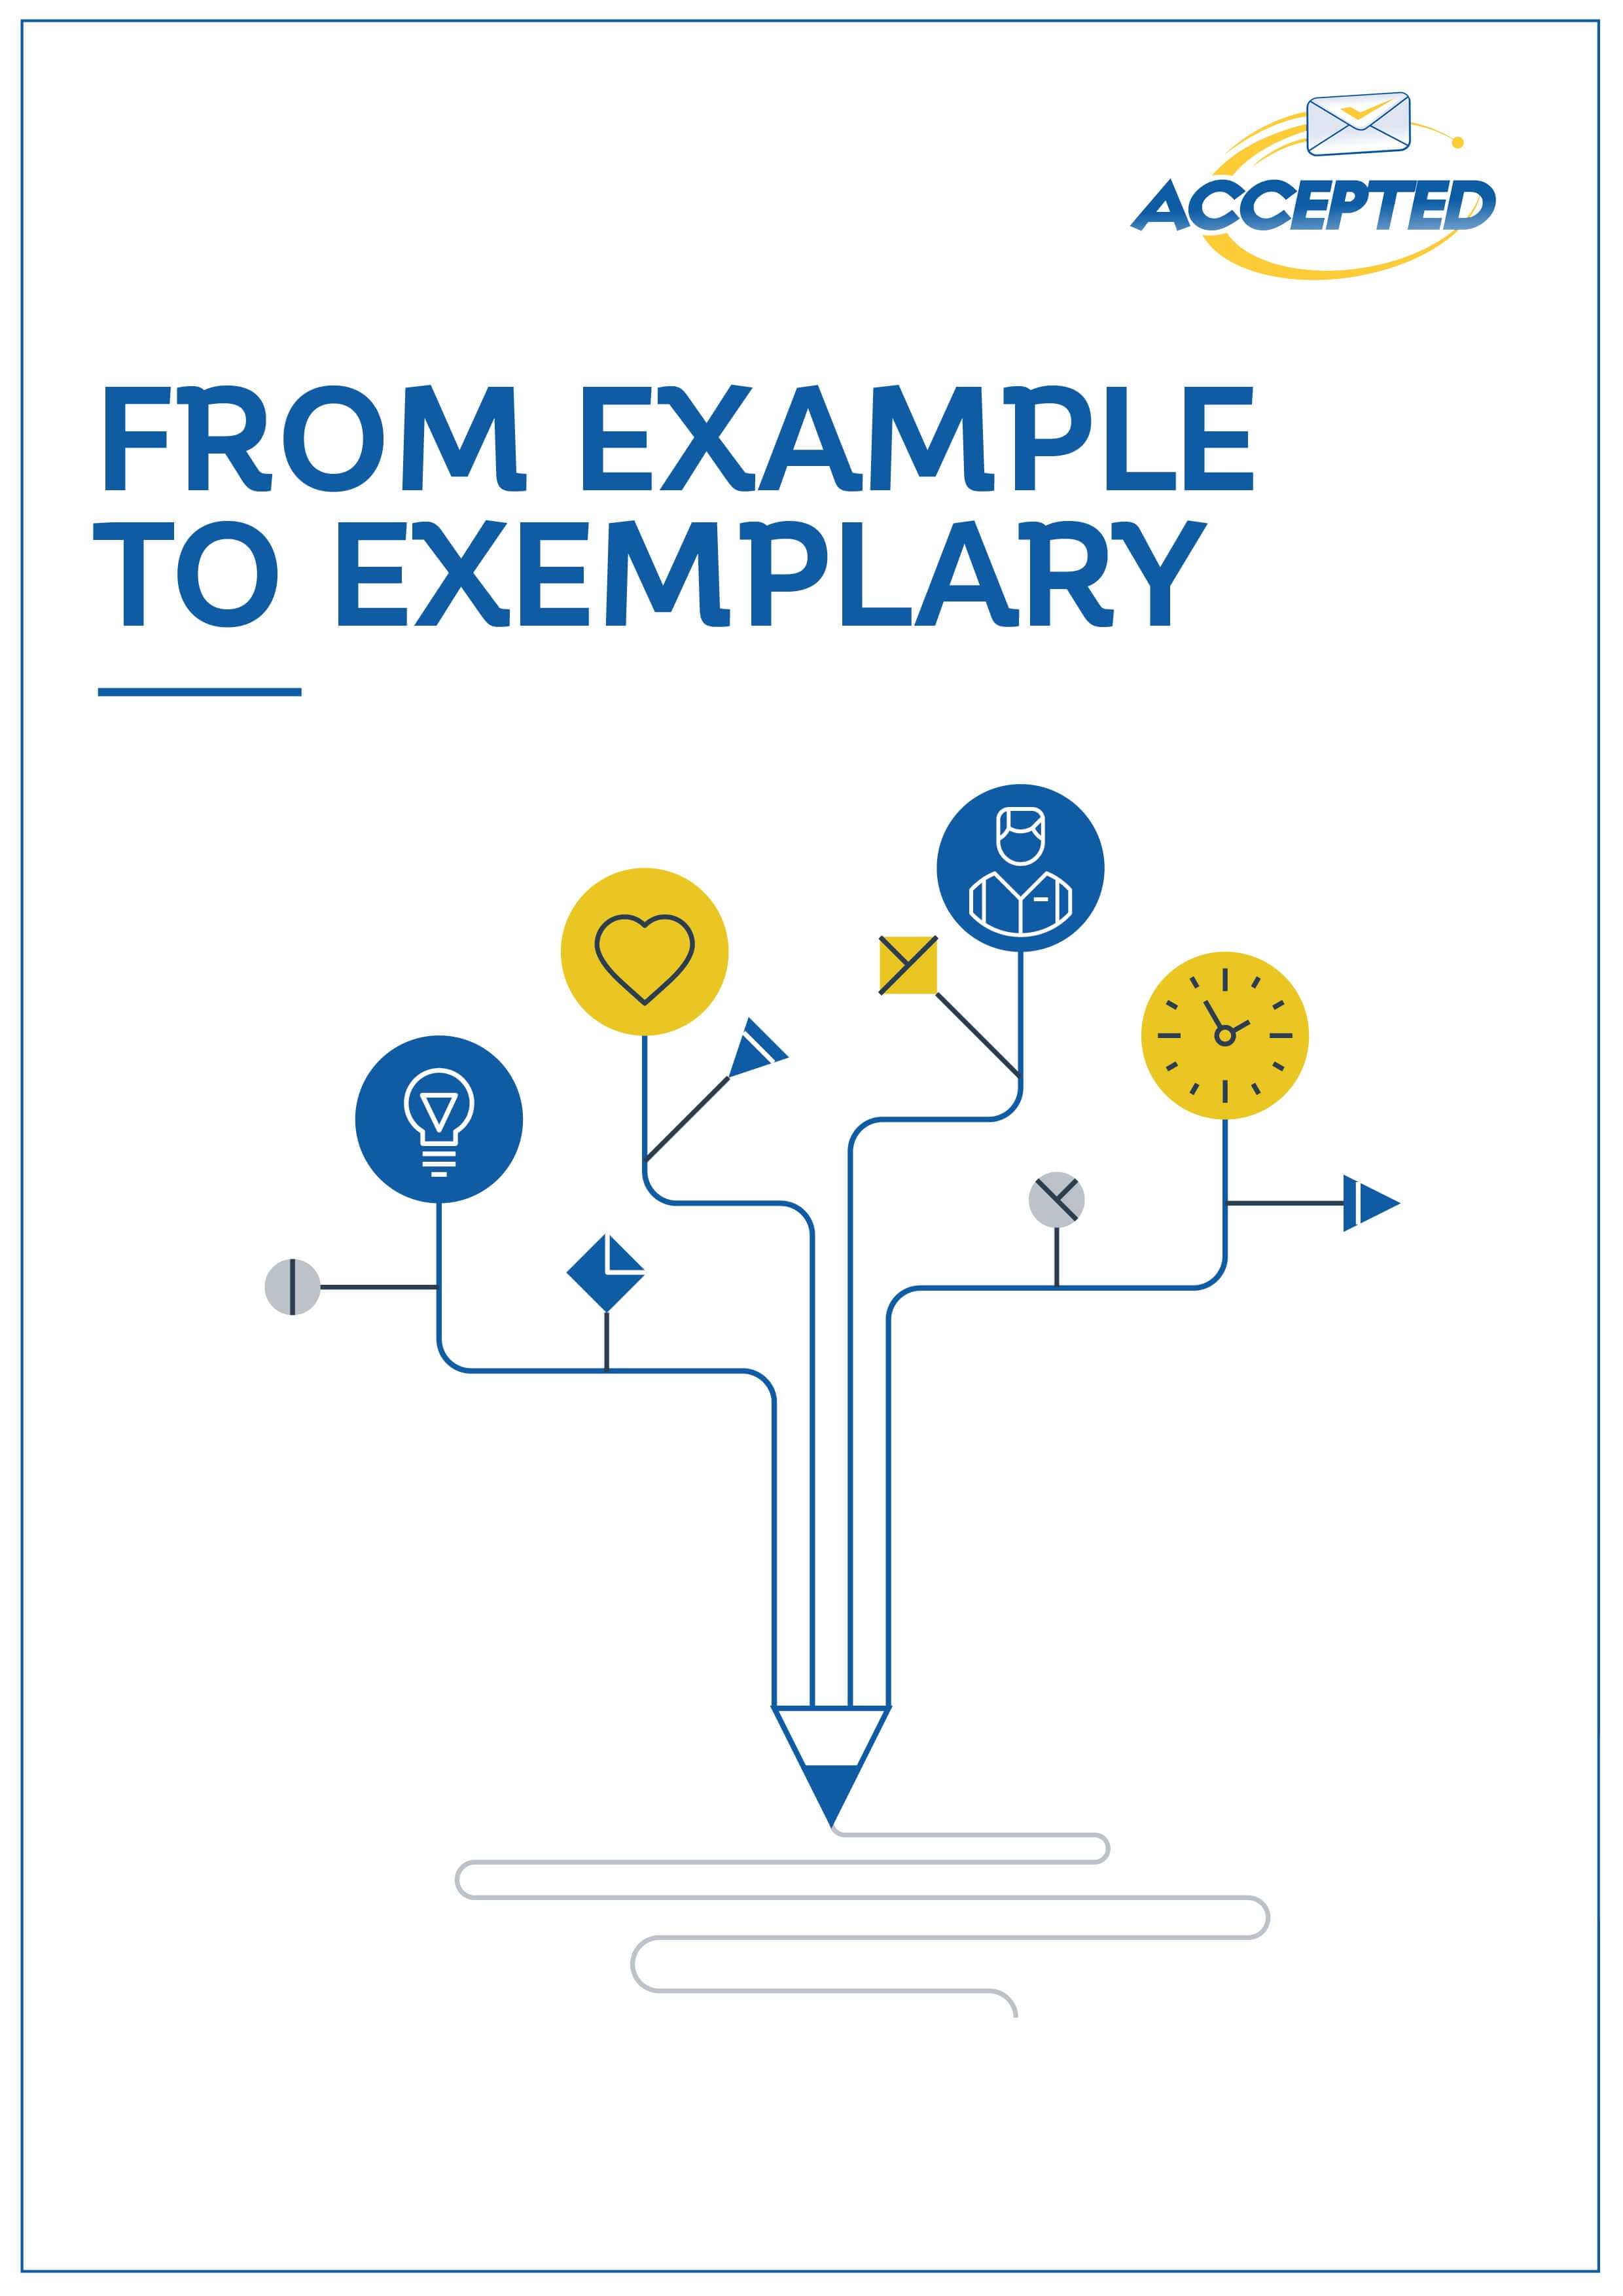 From Example to Exemplary